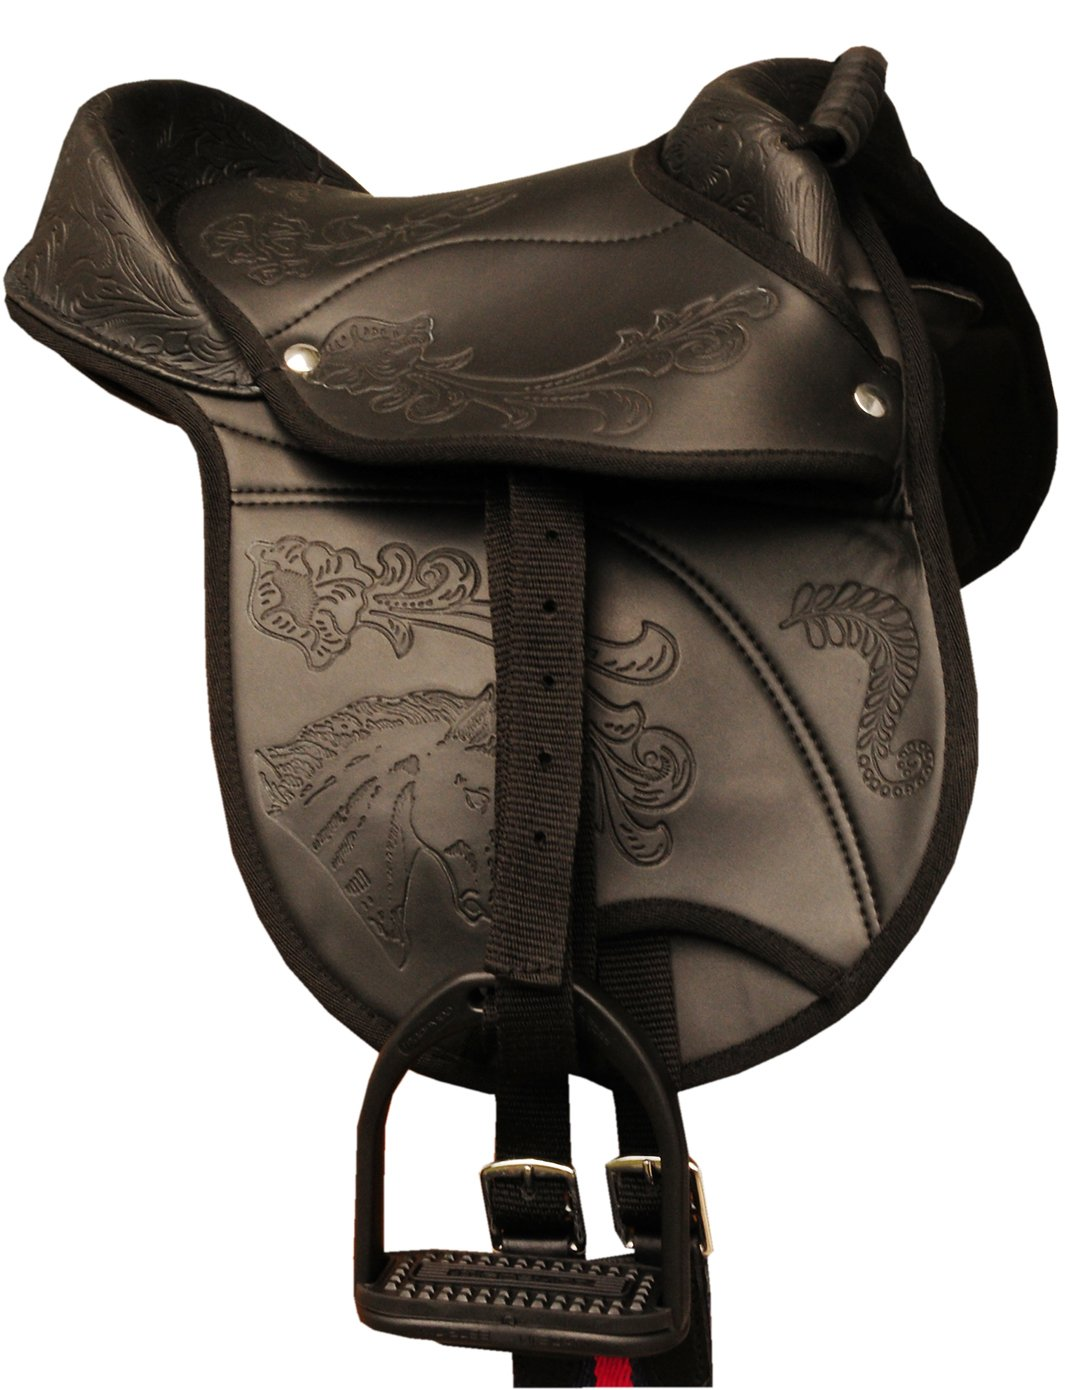 'Amka Hide Covered Pony Pad Nevio Belt and Stirrups also suitable for wooden horse pony Shetland Pony Saddle 10 Complete Outfit with Strap Black Reitsport Amesbichler